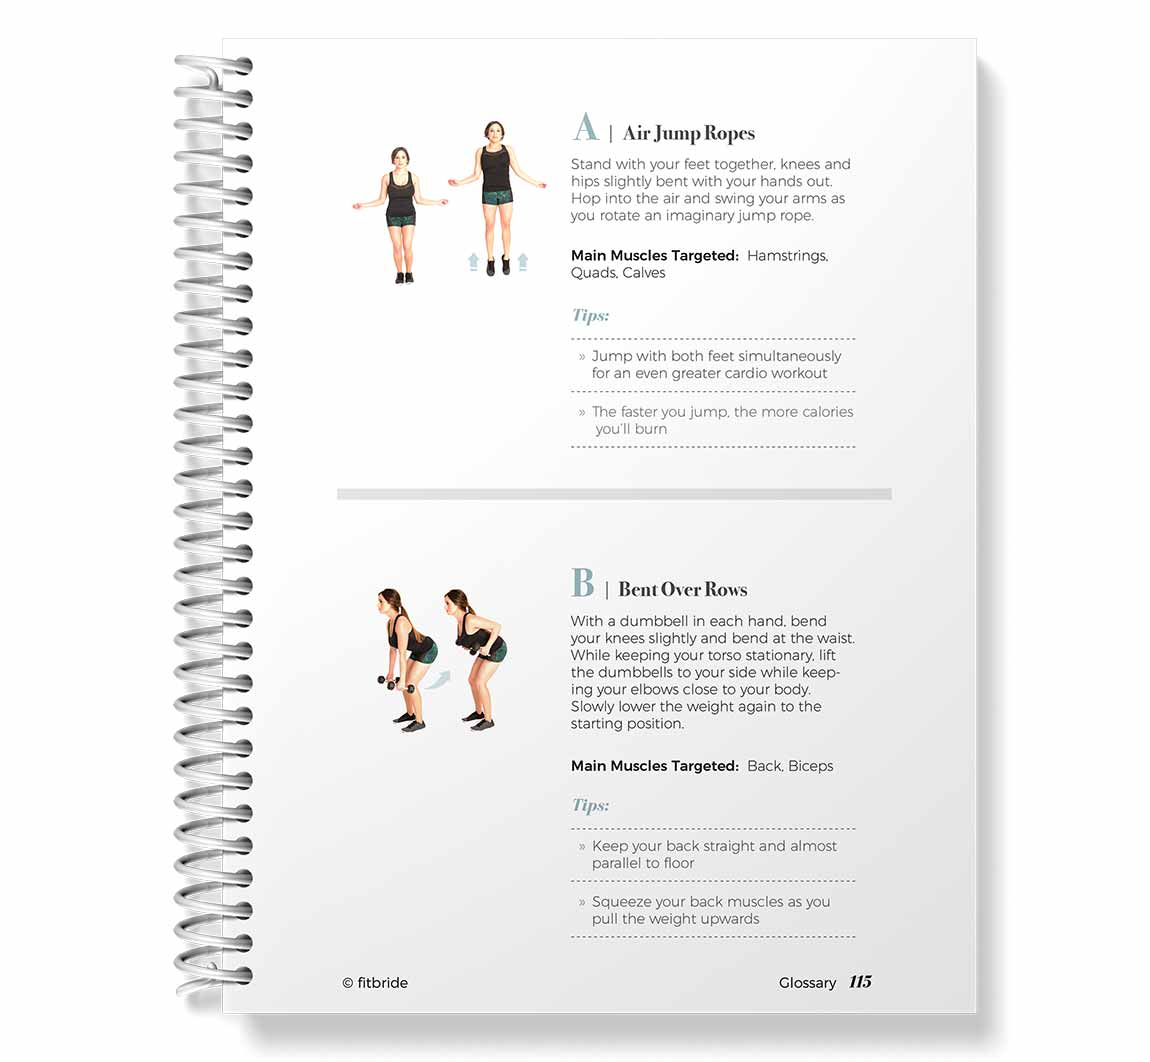 Fitbride Glossary of Exercises